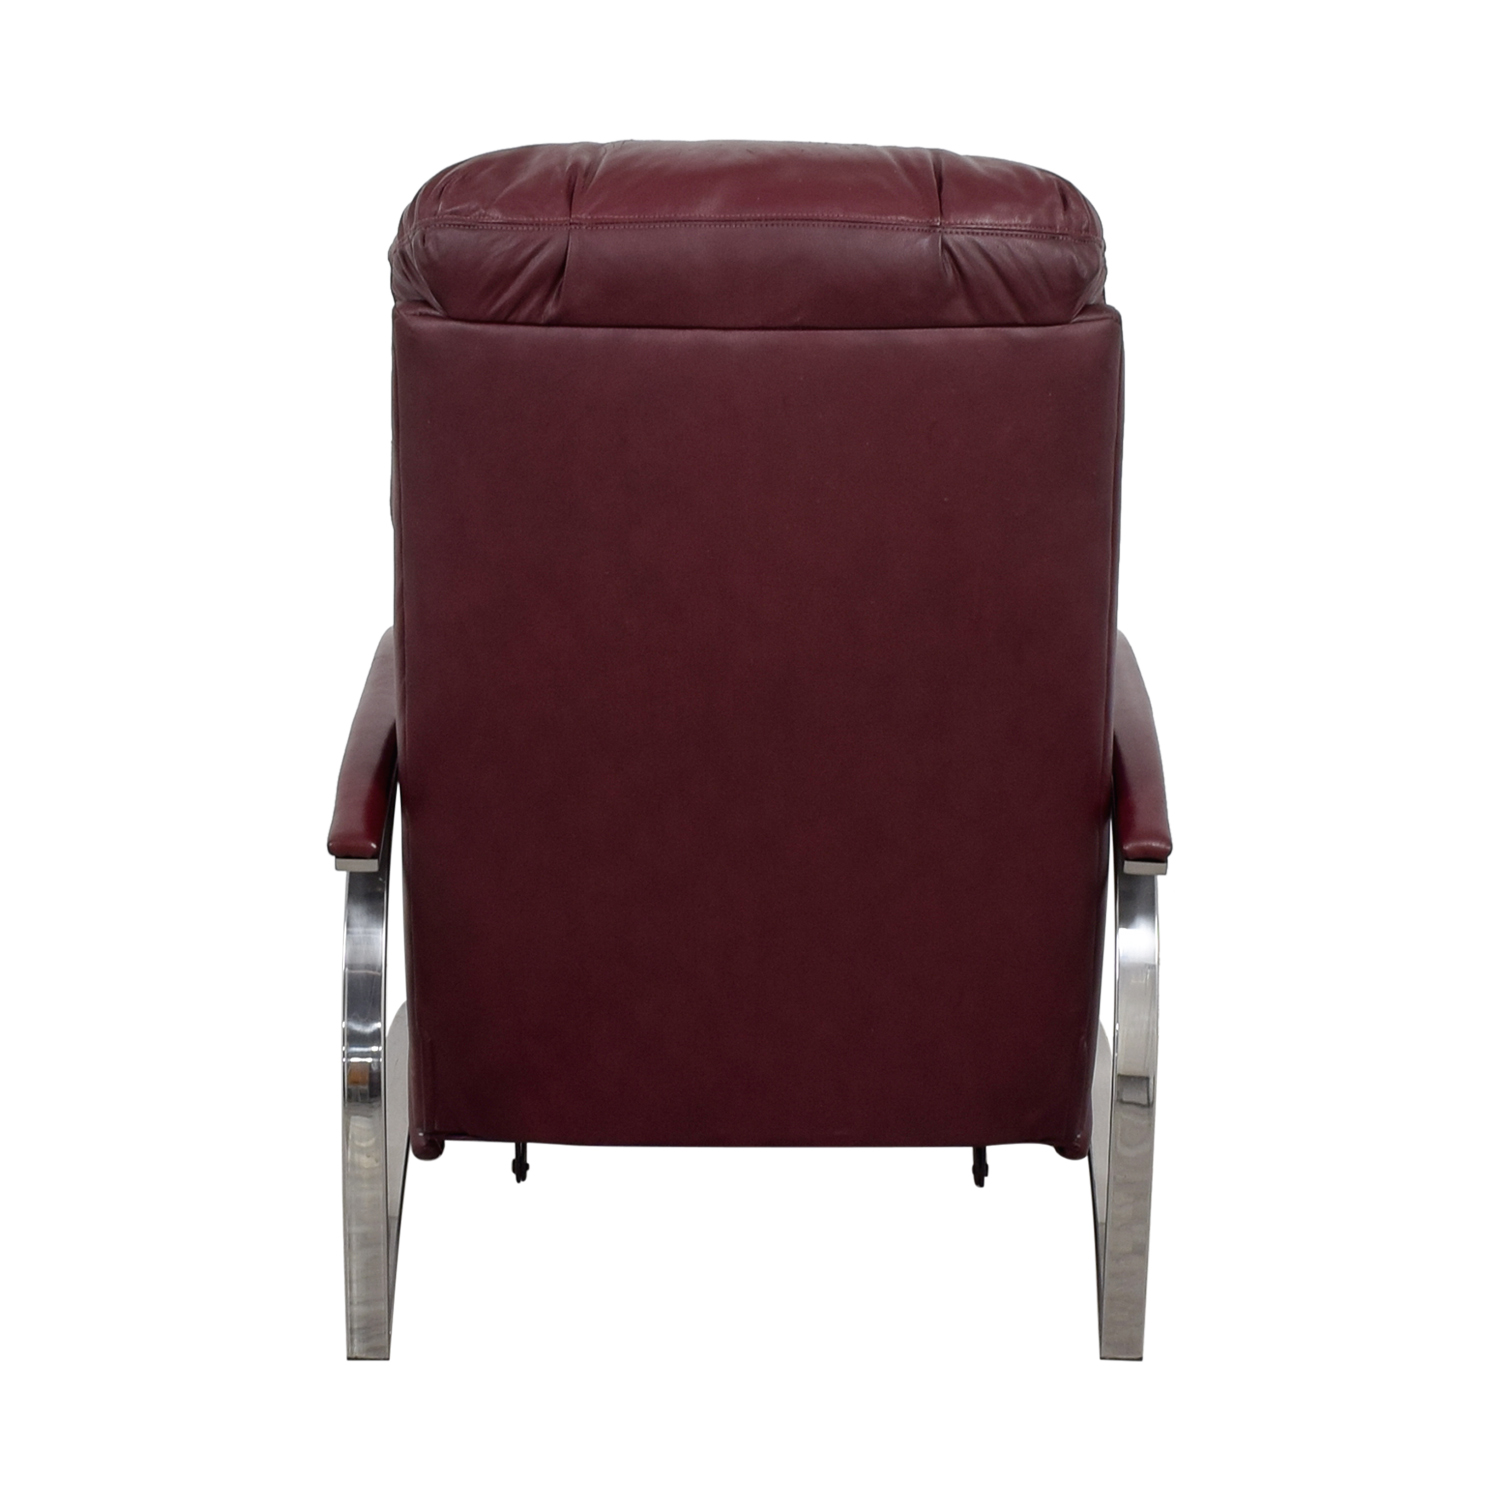 Burgundy Leather Recliner Chair coupon